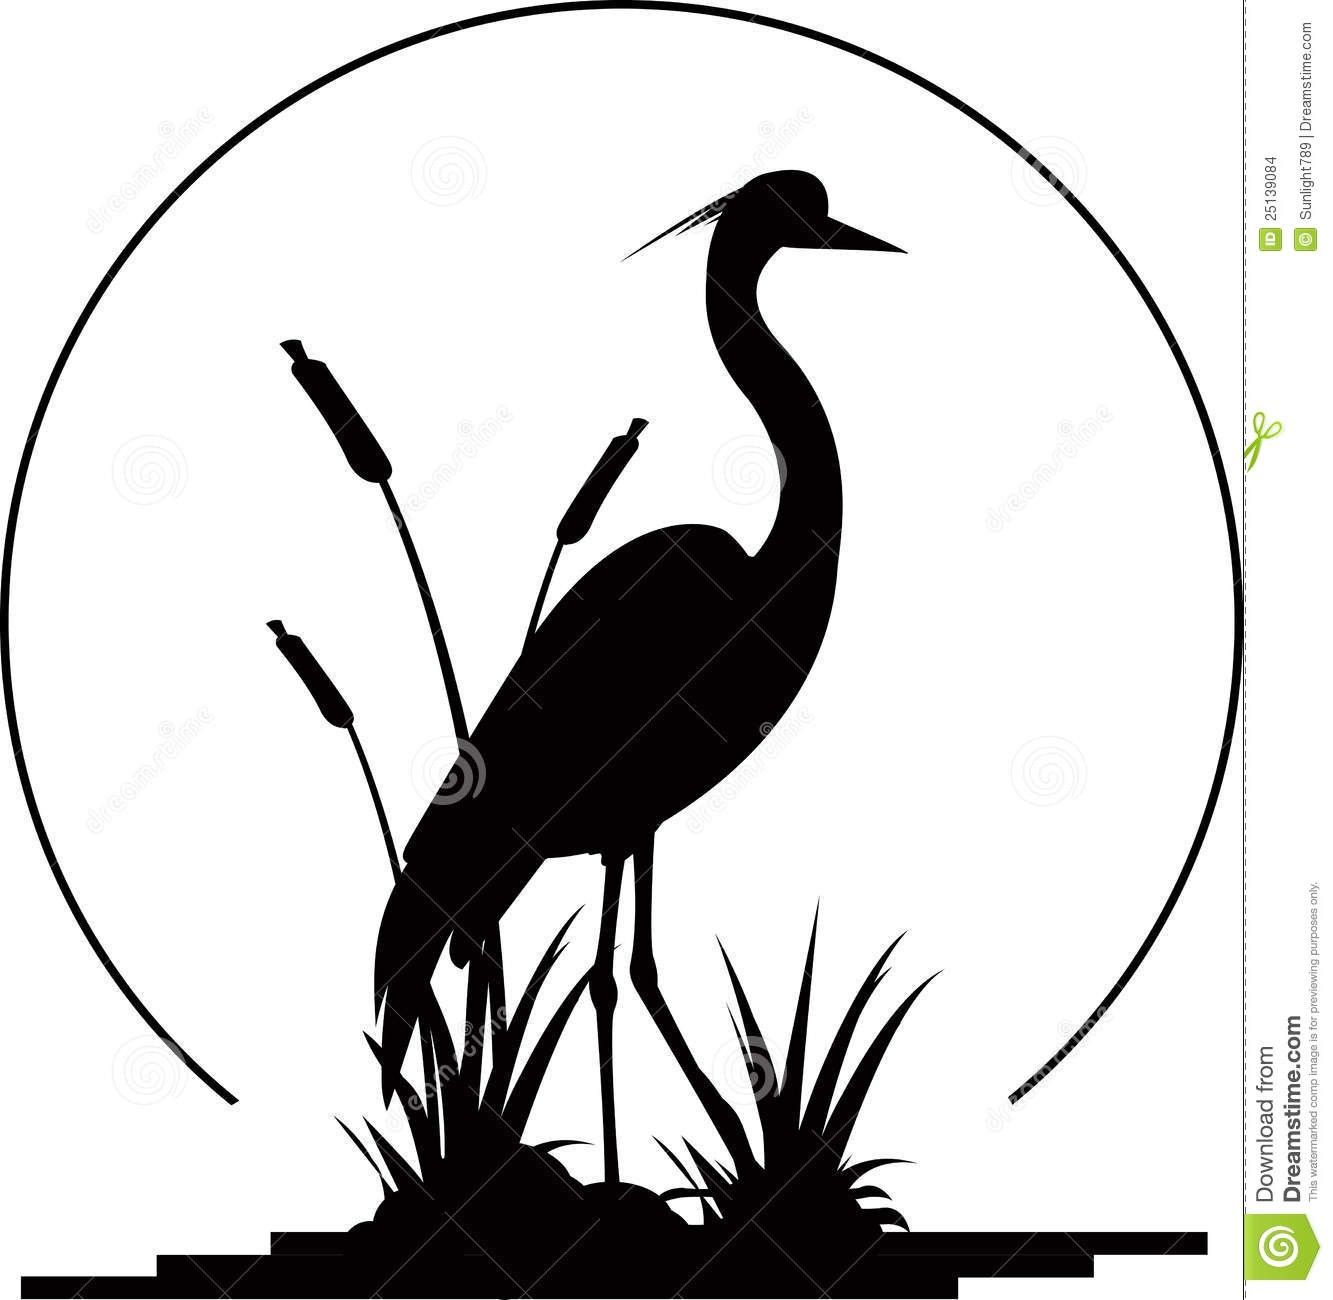 hight resolution of crane bird silhouette 22 at crane bird clipart art nouveau kiwi bird bird clipart